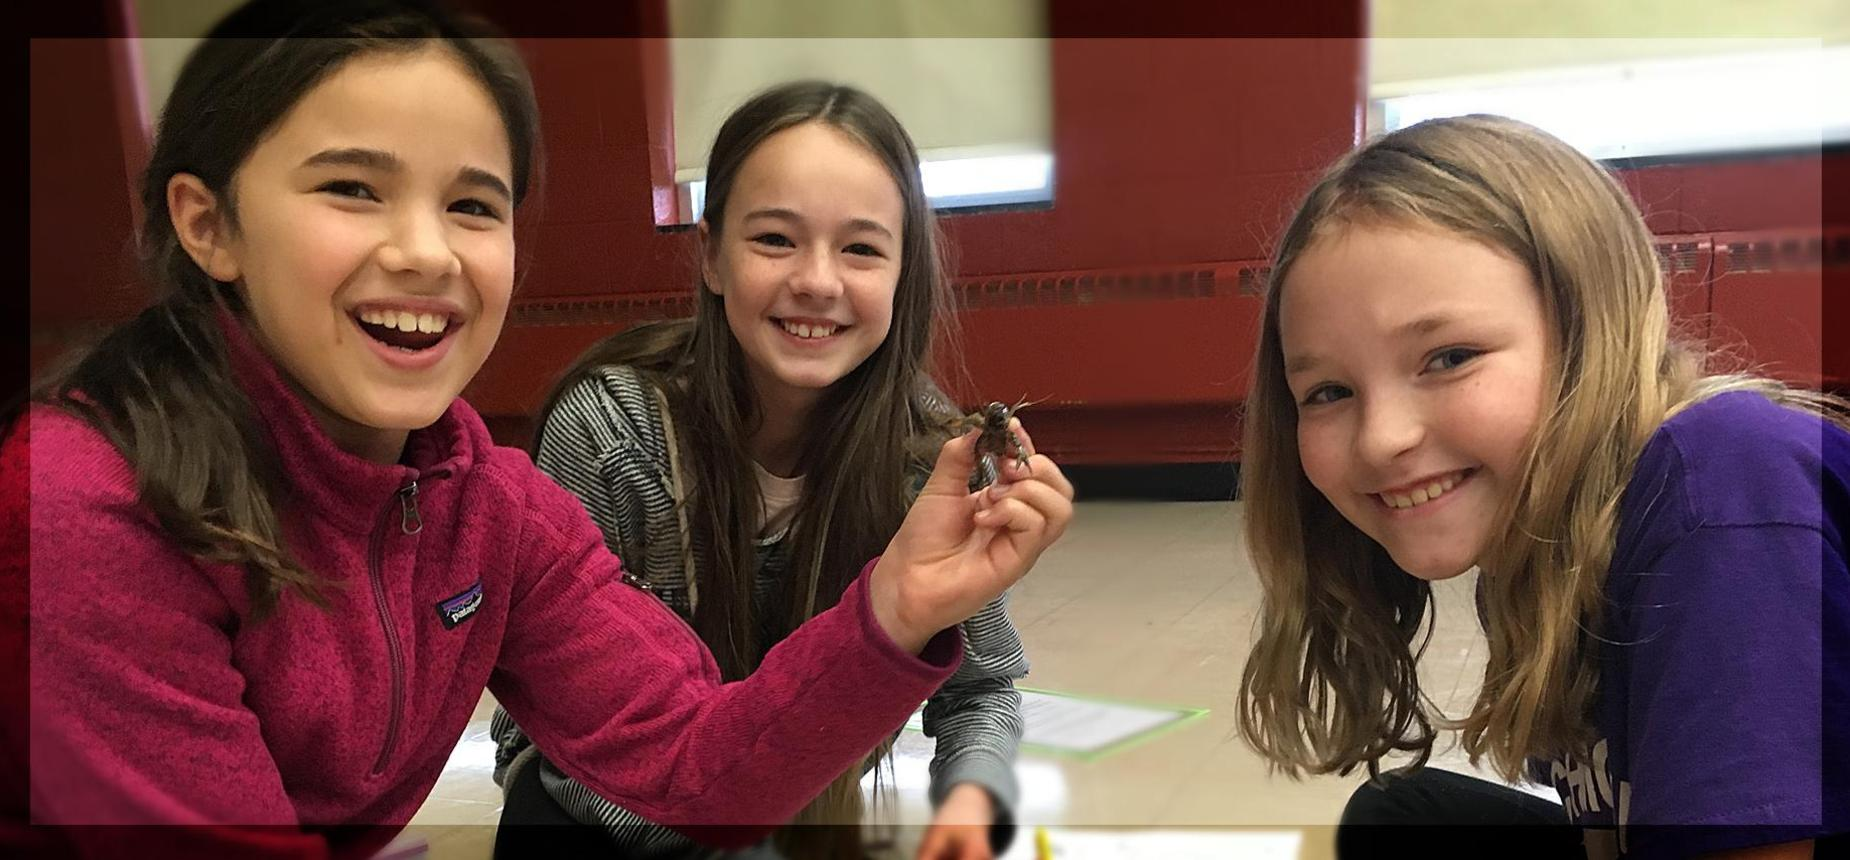 Three elementary students playing with a crawfish